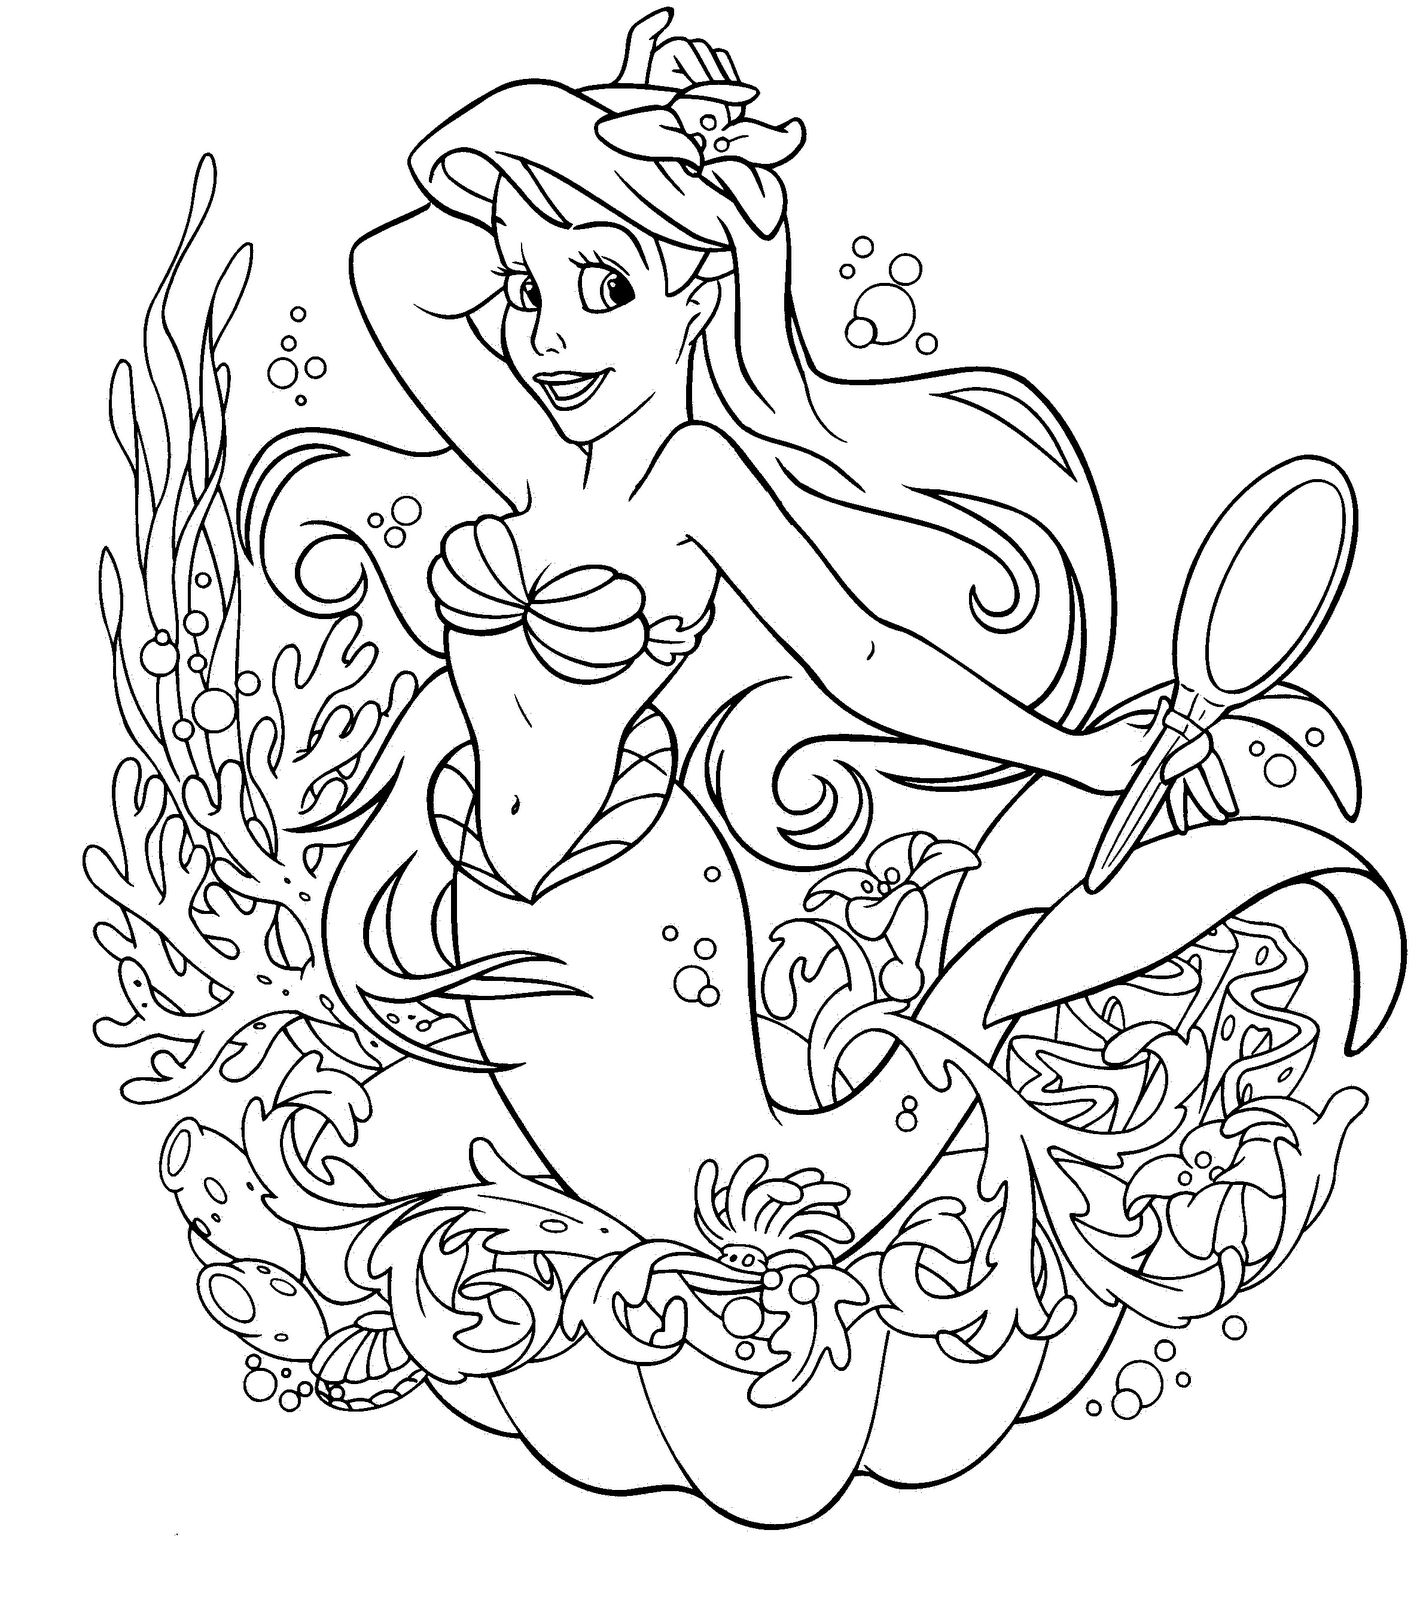 - Printable Mermaid Coloring Pages